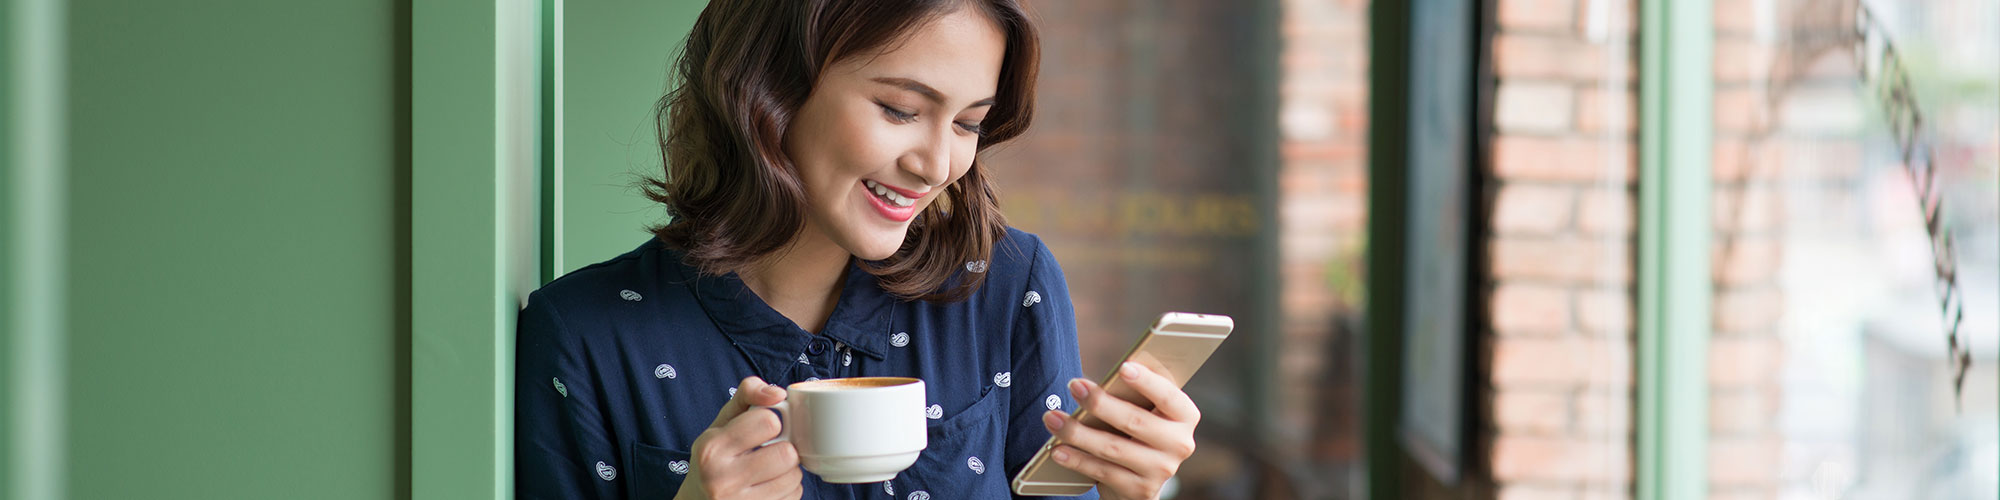 smiling woman looking a smartphone